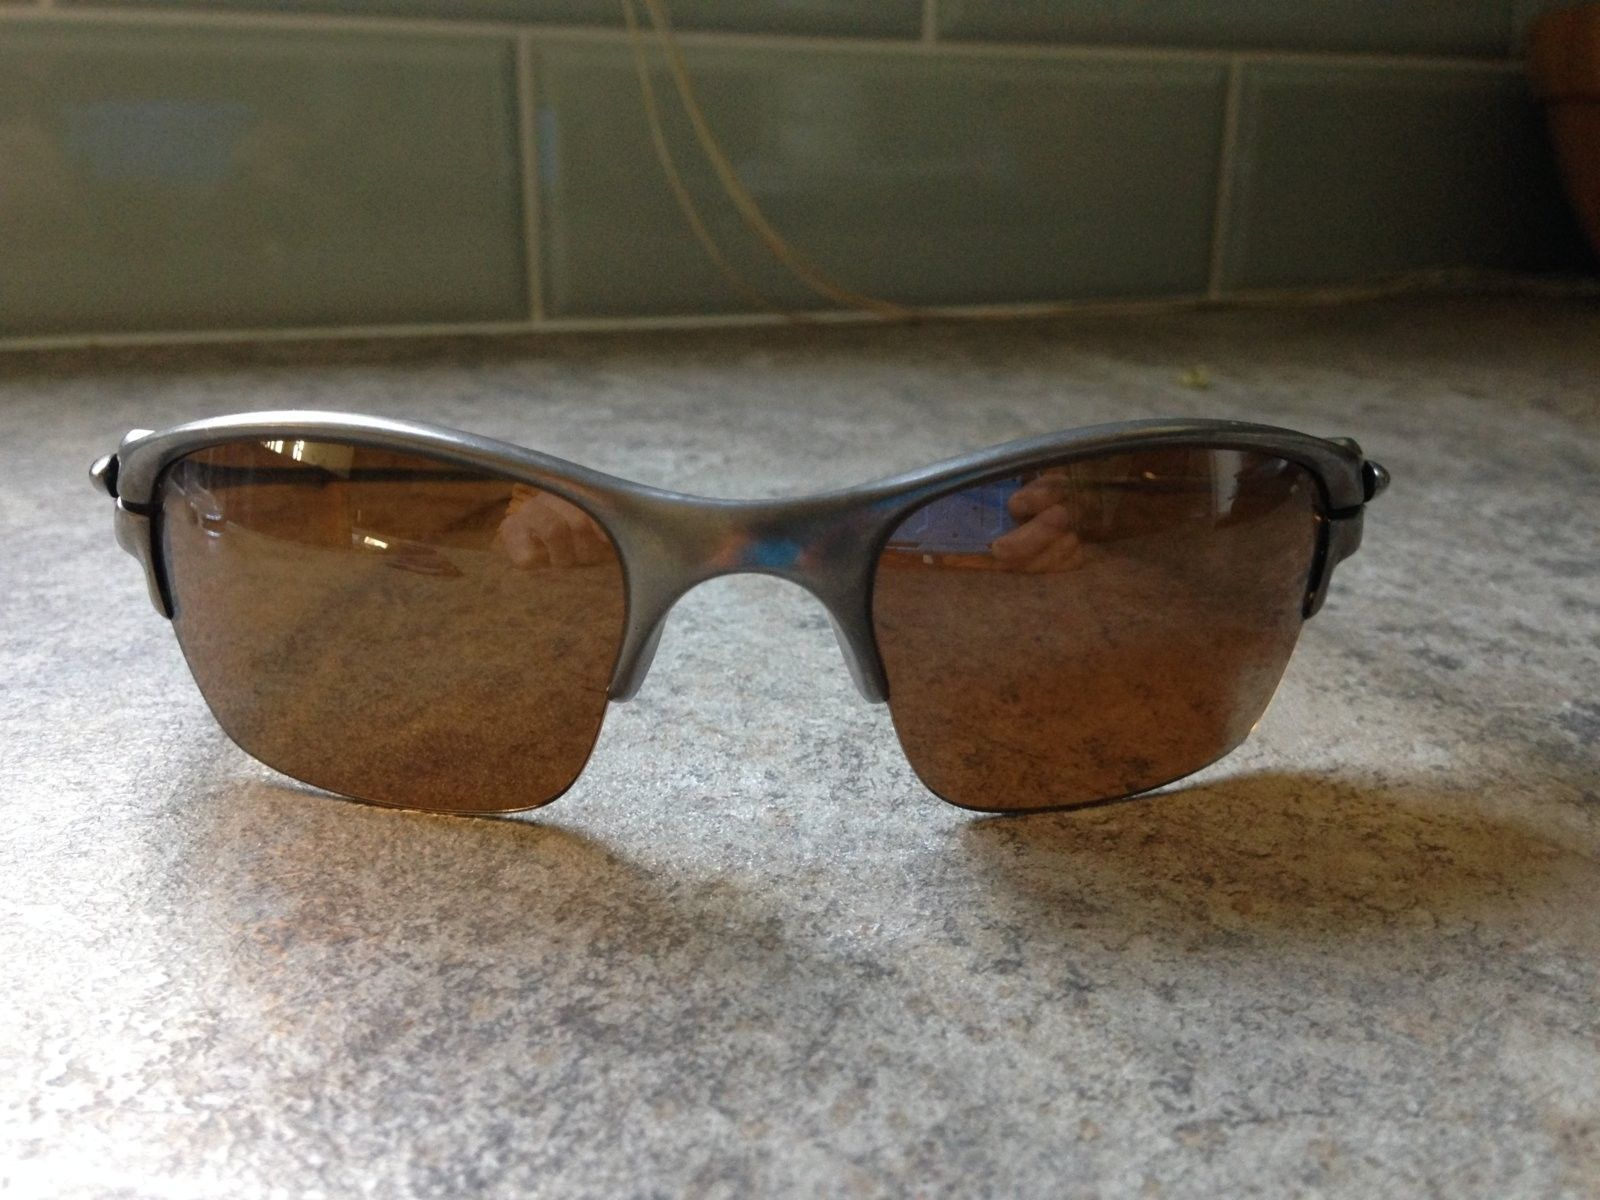 Help finding spares for these Sunglasses - image.jpeg